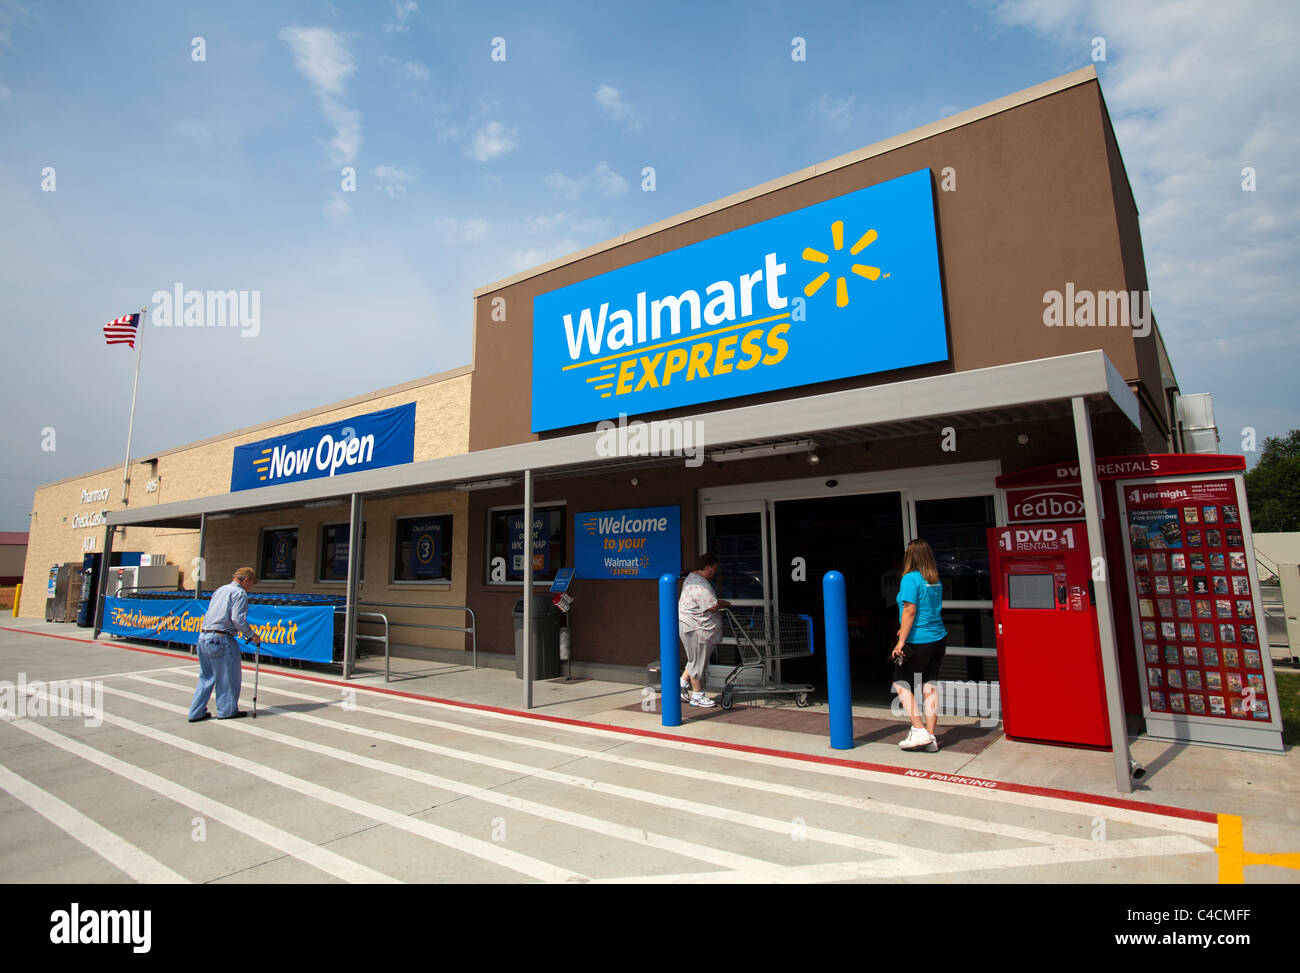 WalMart is an American multinational retail corporation that runs chains of large discount department stores and warehouse stores. The company is the world's largest public corporation, according to the Fortune Global list in , the biggest private employer in the world with over two million employees, and the largest retailer in the world.